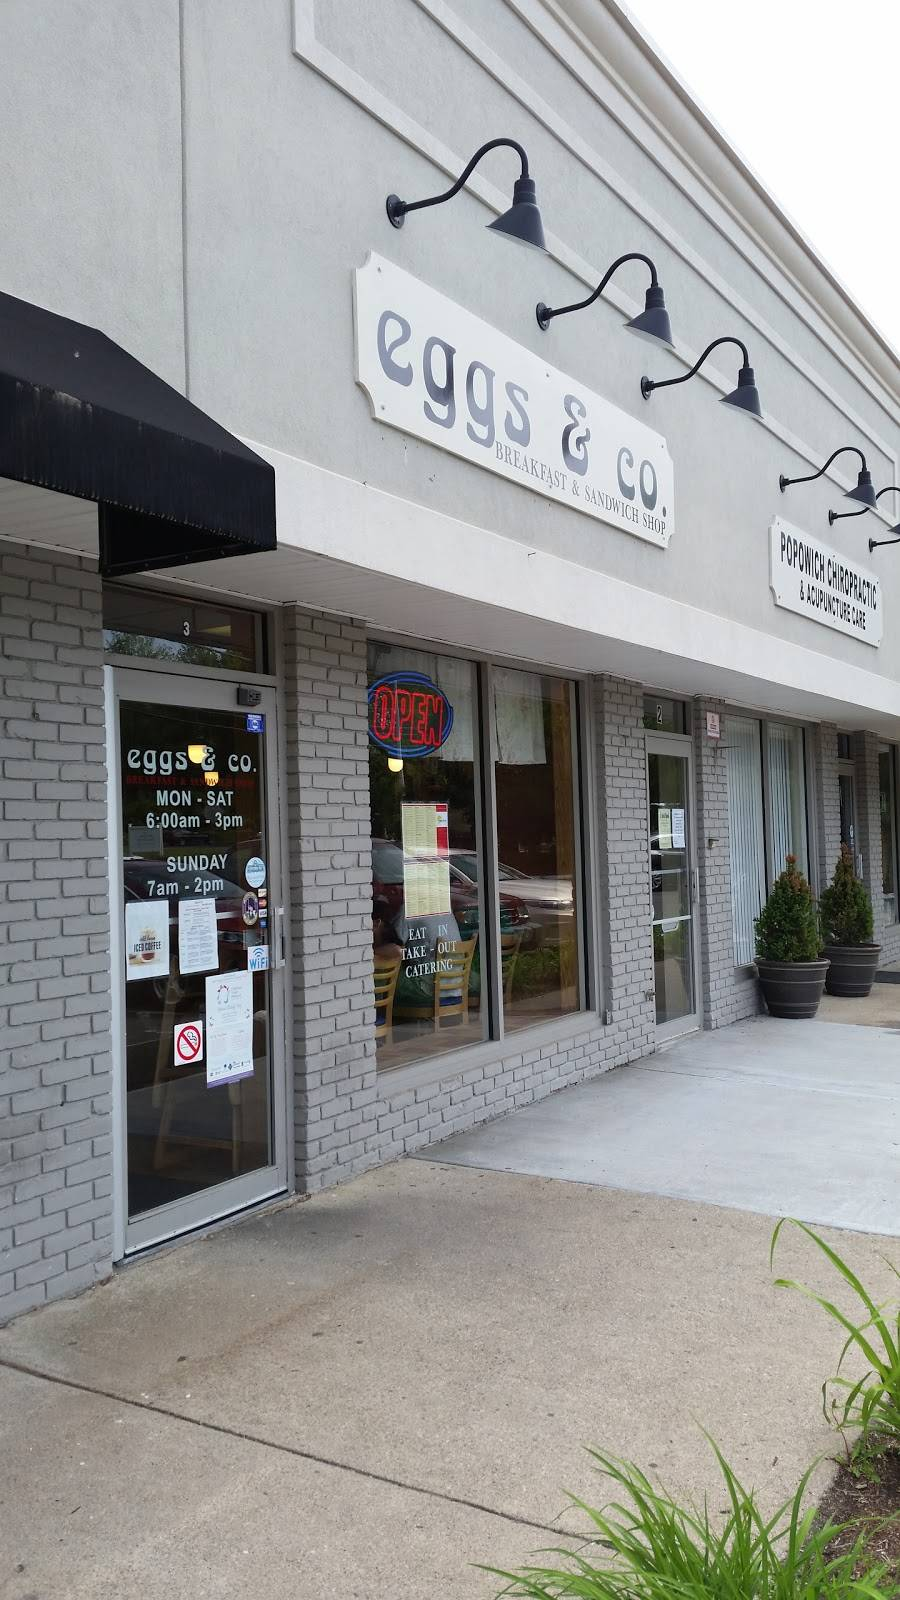 Eggs & Co. | restaurant | 71 S Main St, Newtown, CT 06470, USA | 2034912727 OR +1 203-491-2727